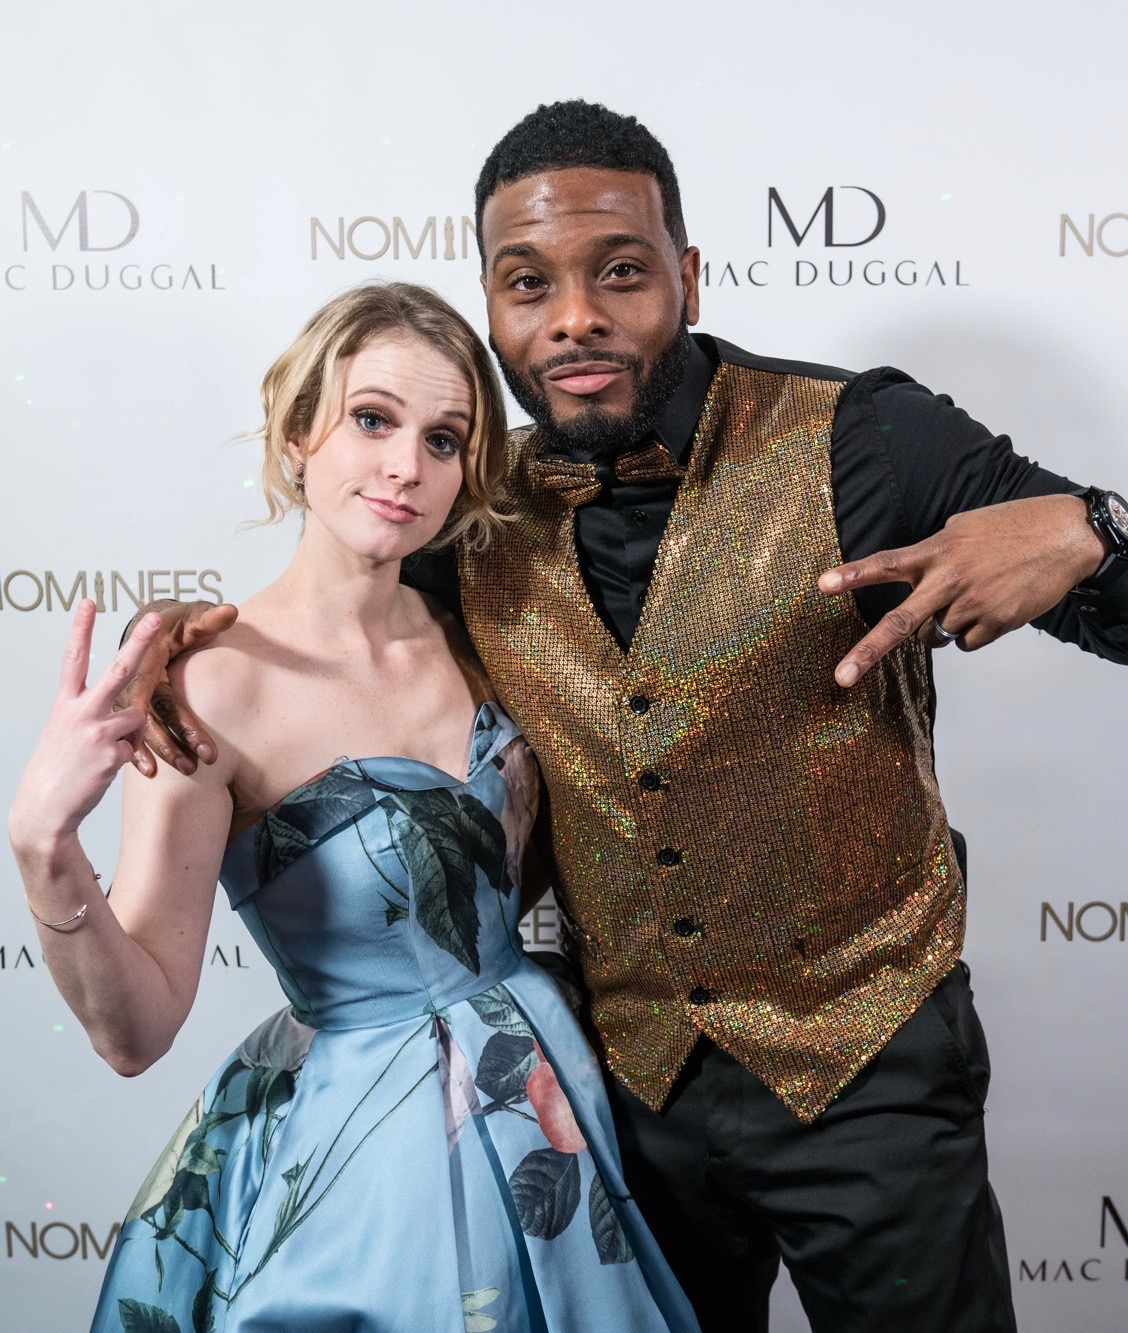 Judge Kel Mitchell and I throw up deuces post-show. Loved the vest.